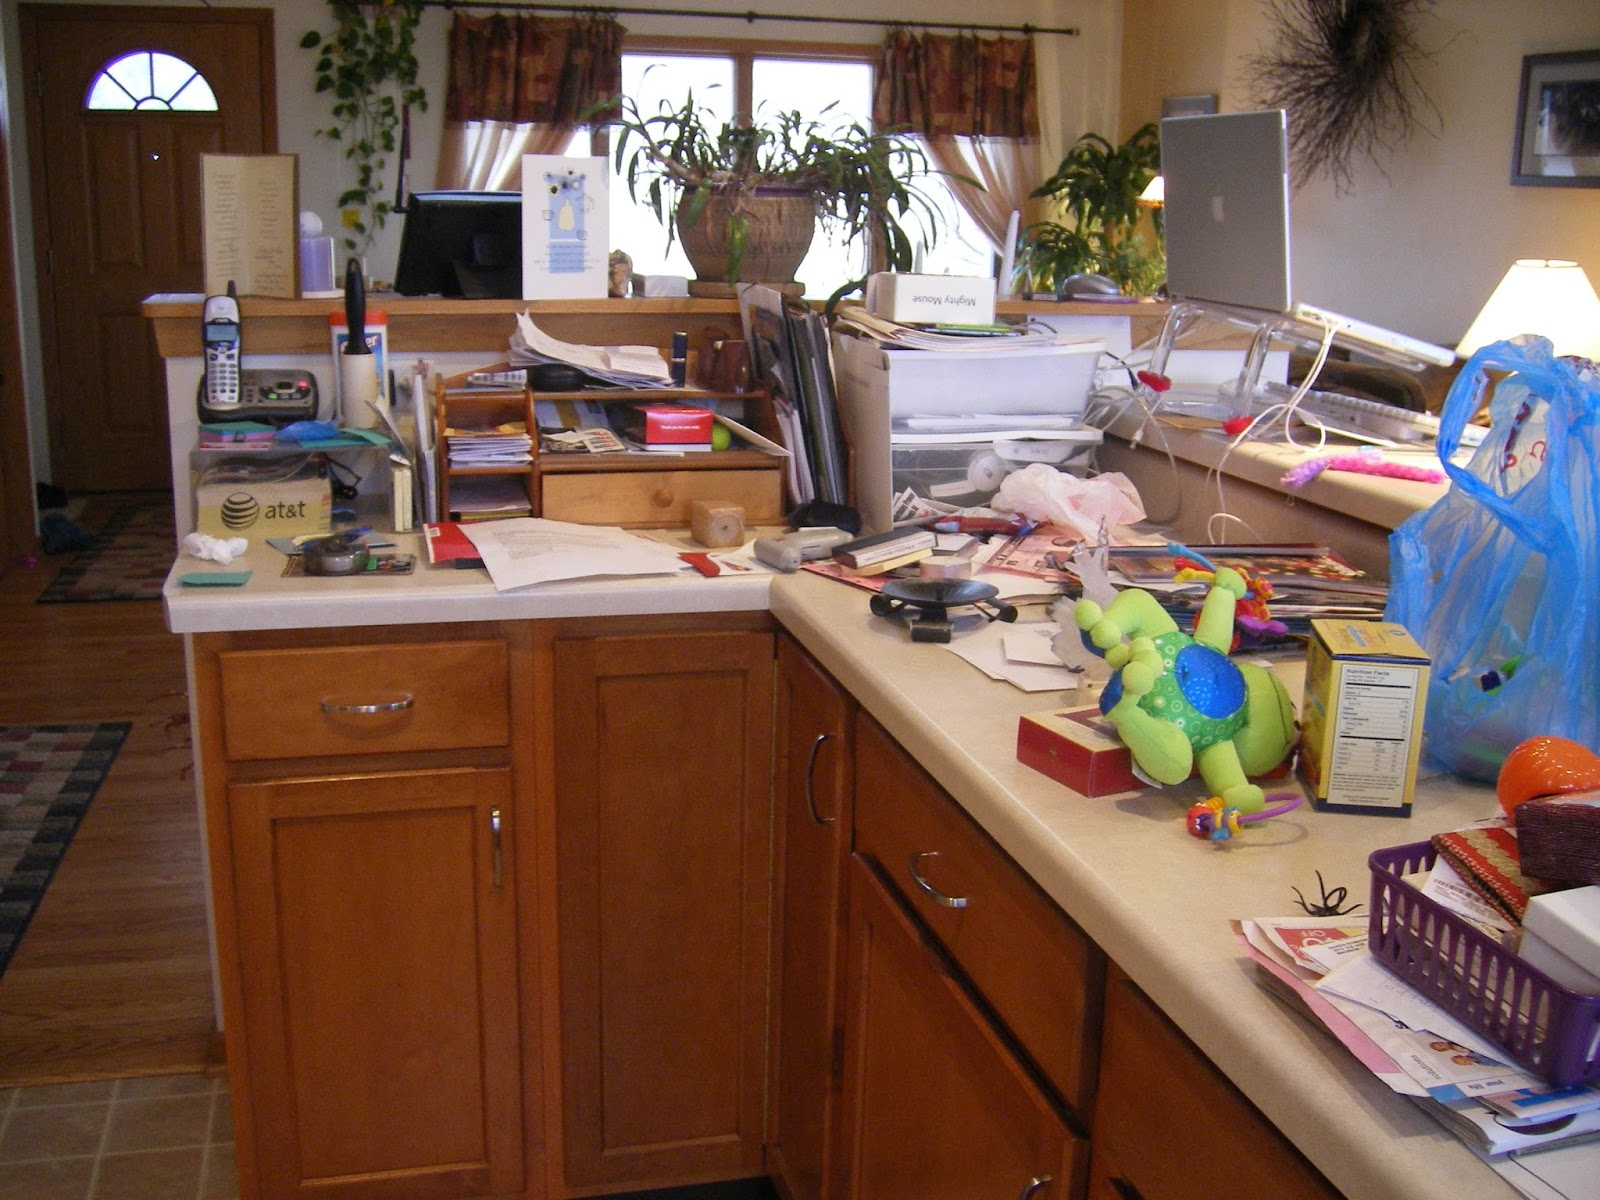 How To Keep Your Kitchen Counters Decluttered